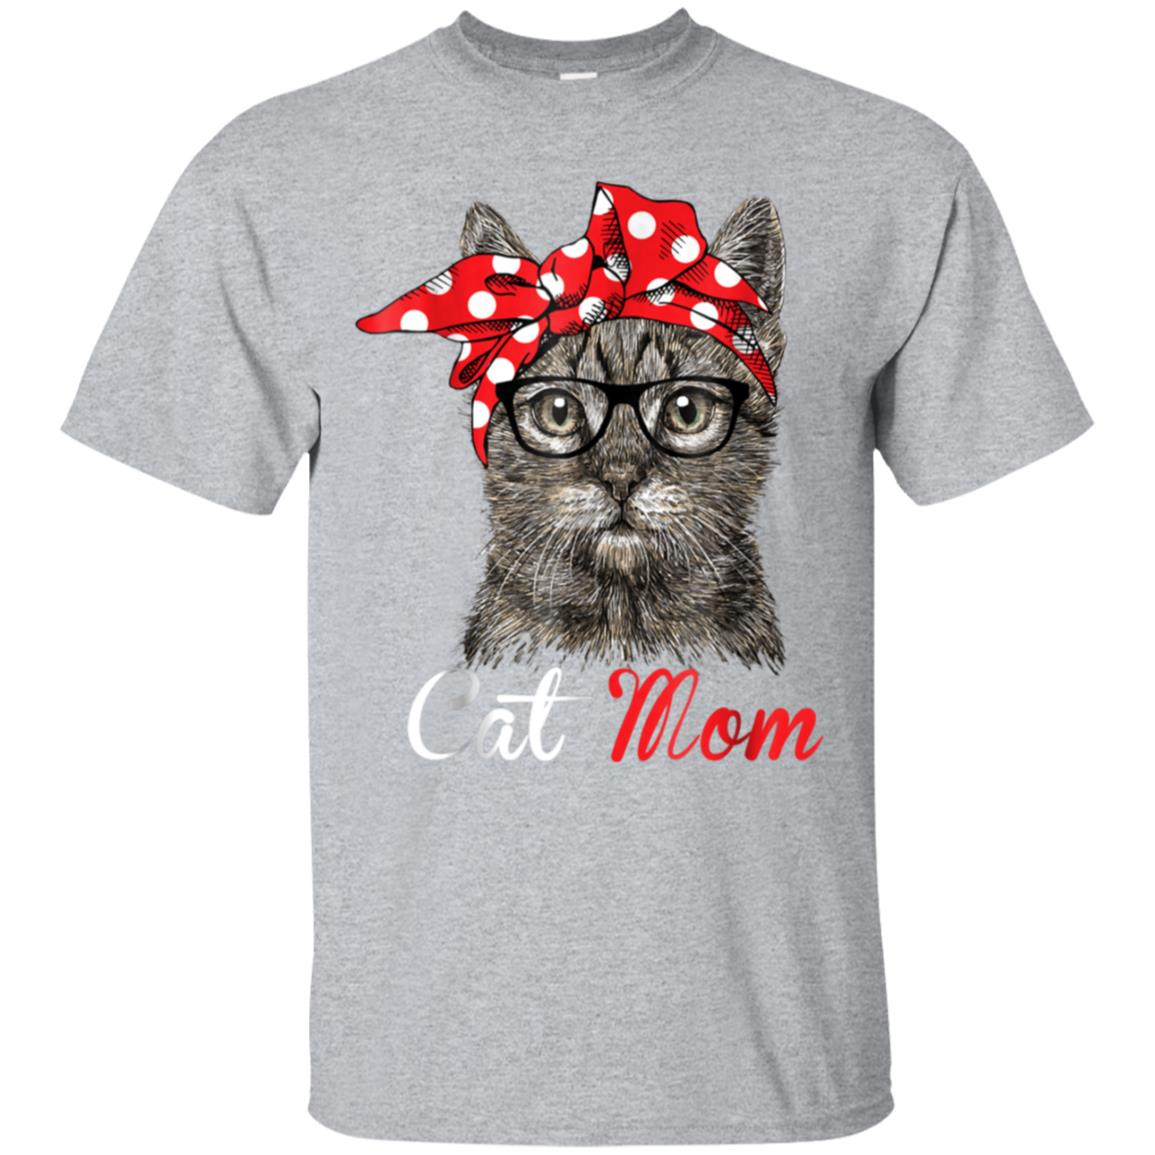 Funny Cat Mom Shirt for Cat Lovers-Mothers Day Gift 99promocode